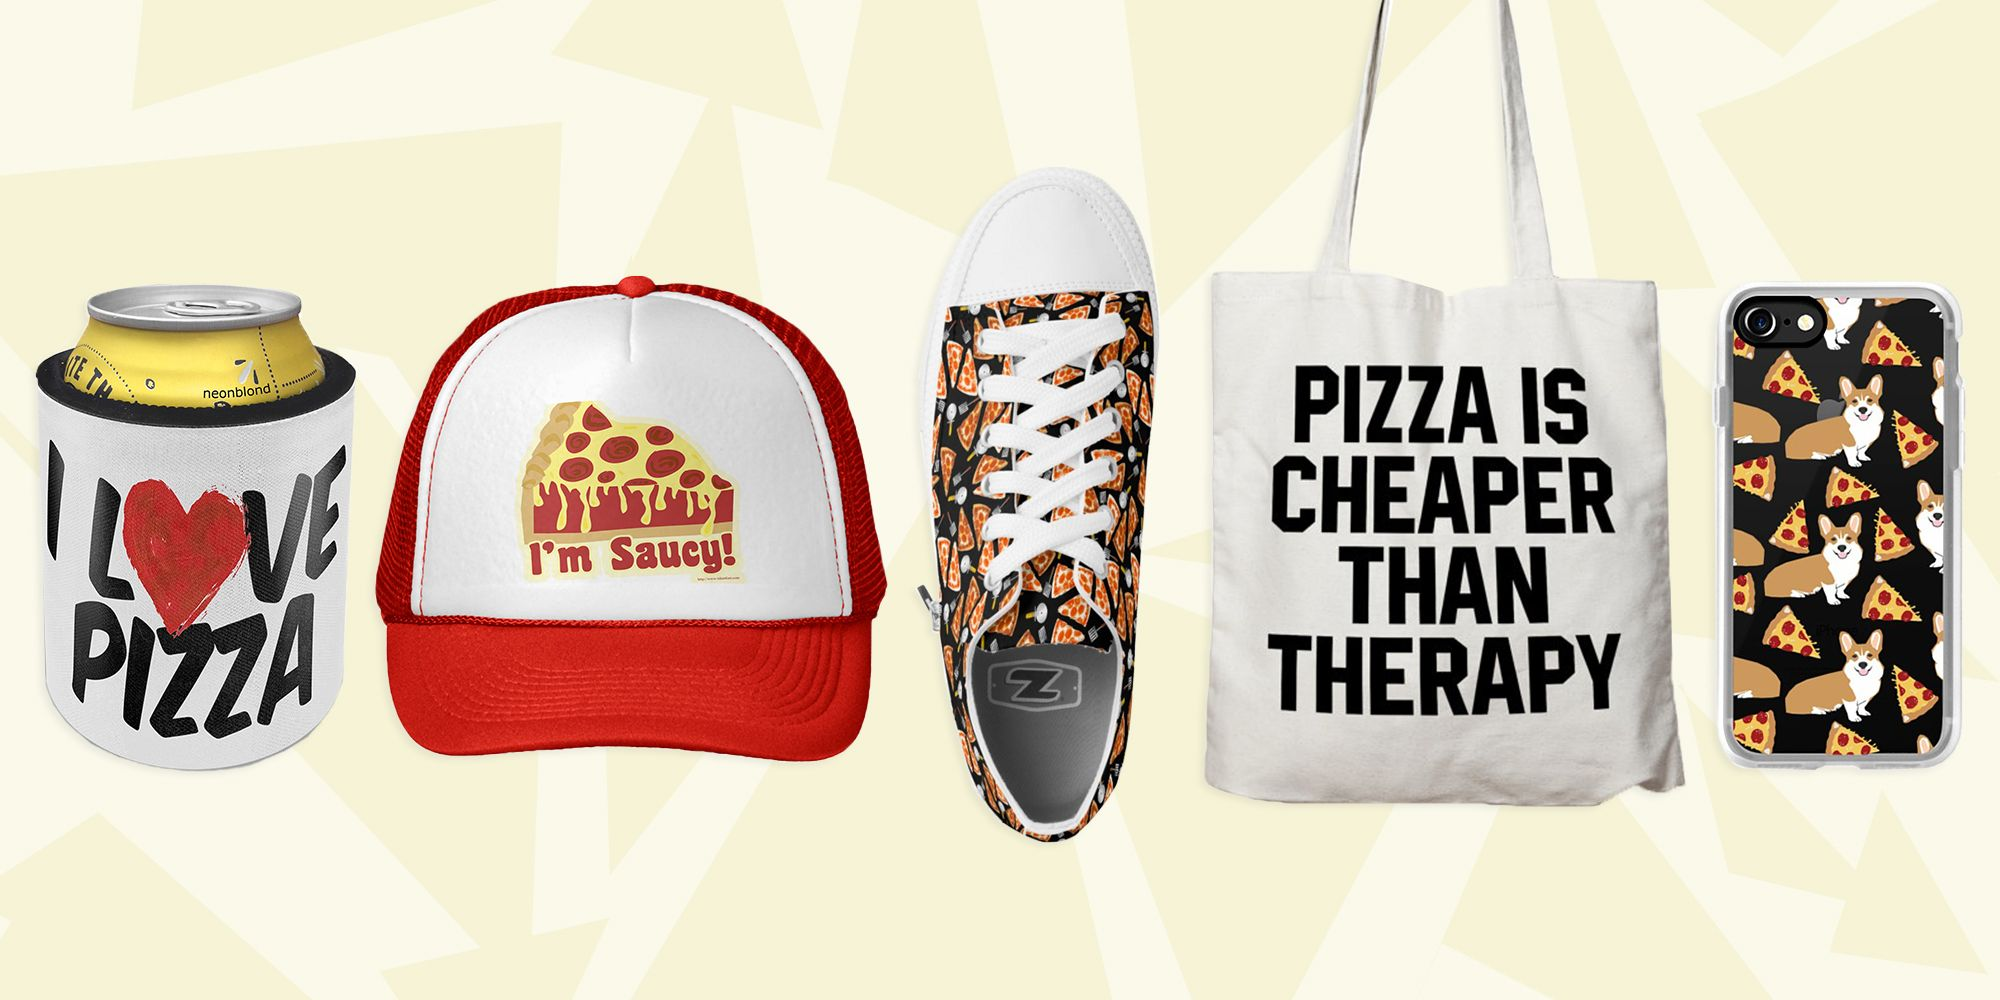 3eedf5f5ce9b0 30 Best Pizza Products and Accessories in 2018 - Pizza Related Stuff We Love